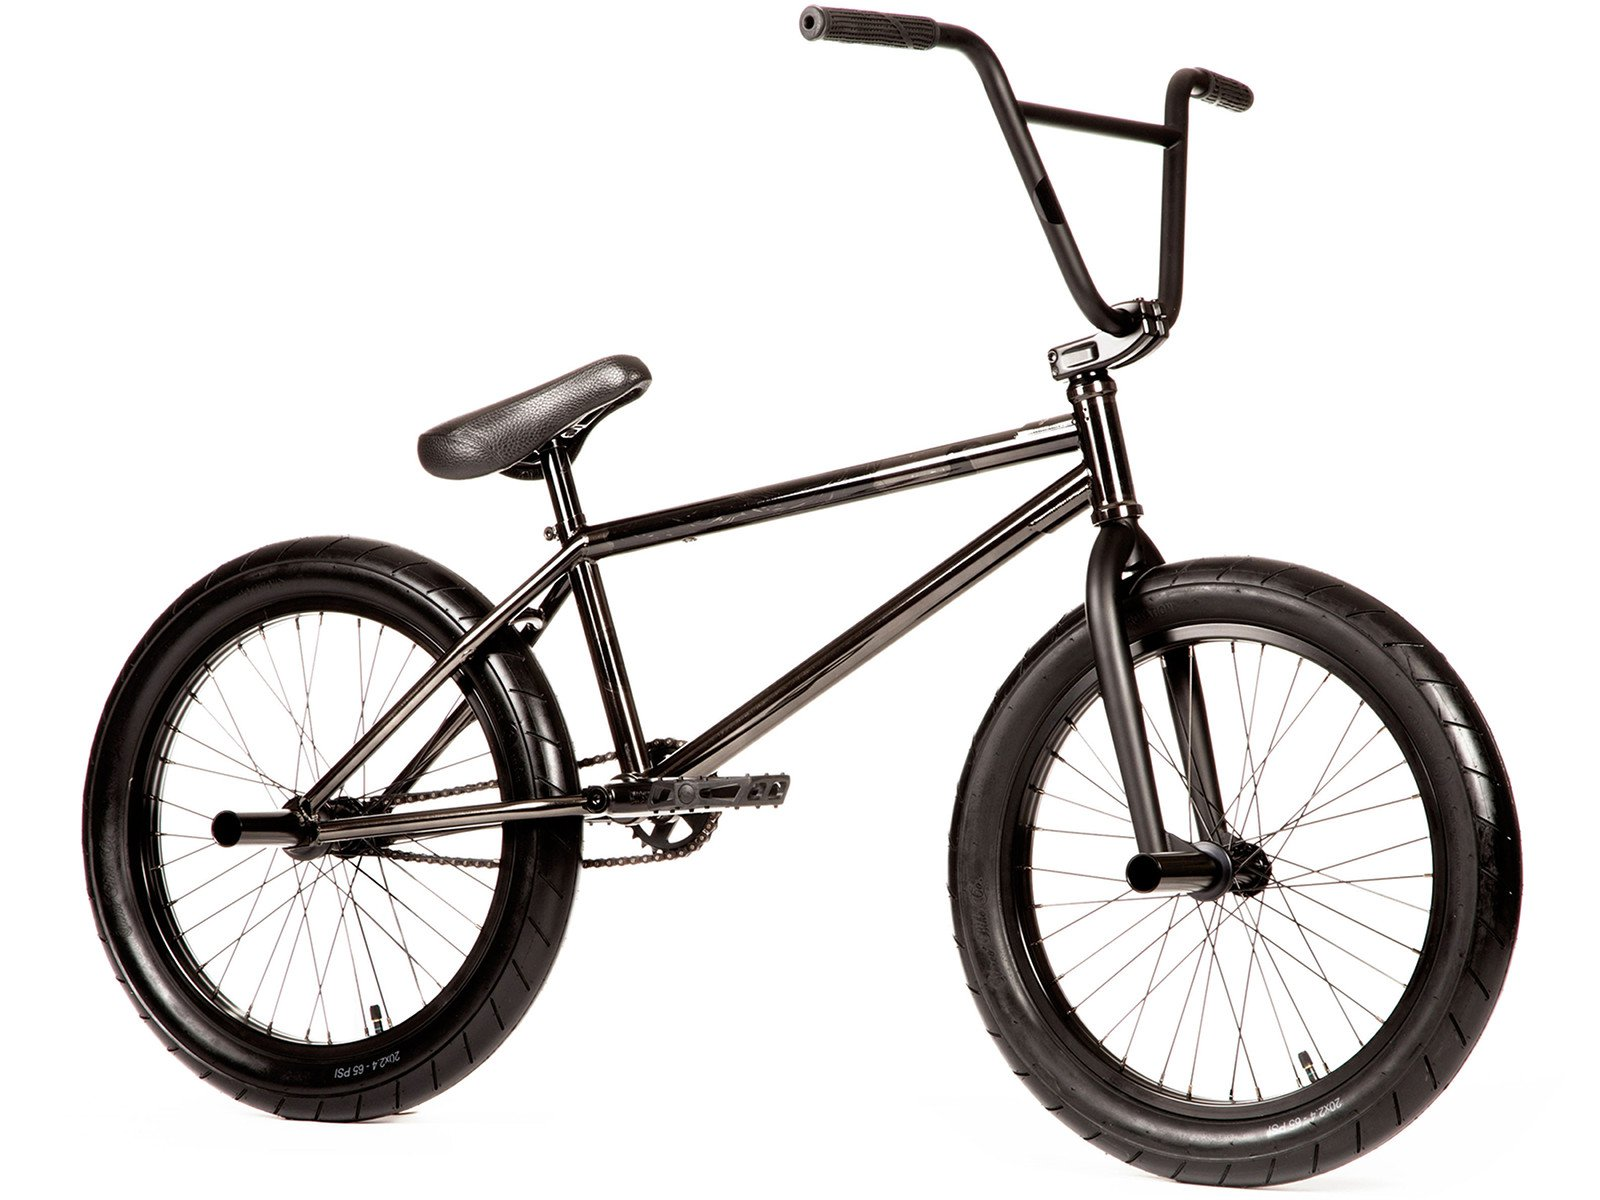 Stereo Bikes Electro 2018 Bmx Bike Lhd Black Chrome